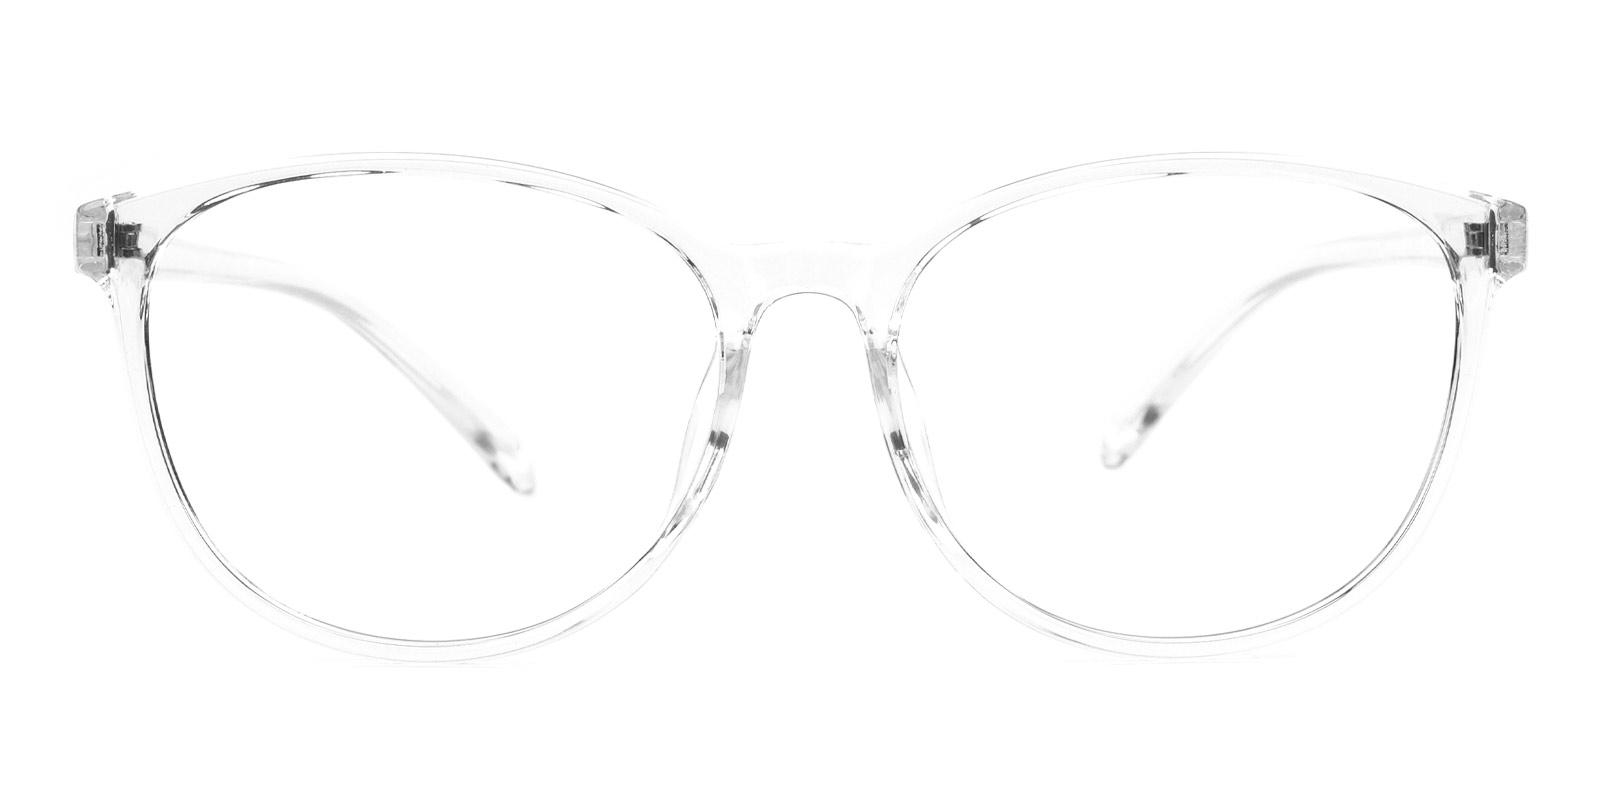 Jay-Translucent-Round-TR-Eyeglasses-additional2